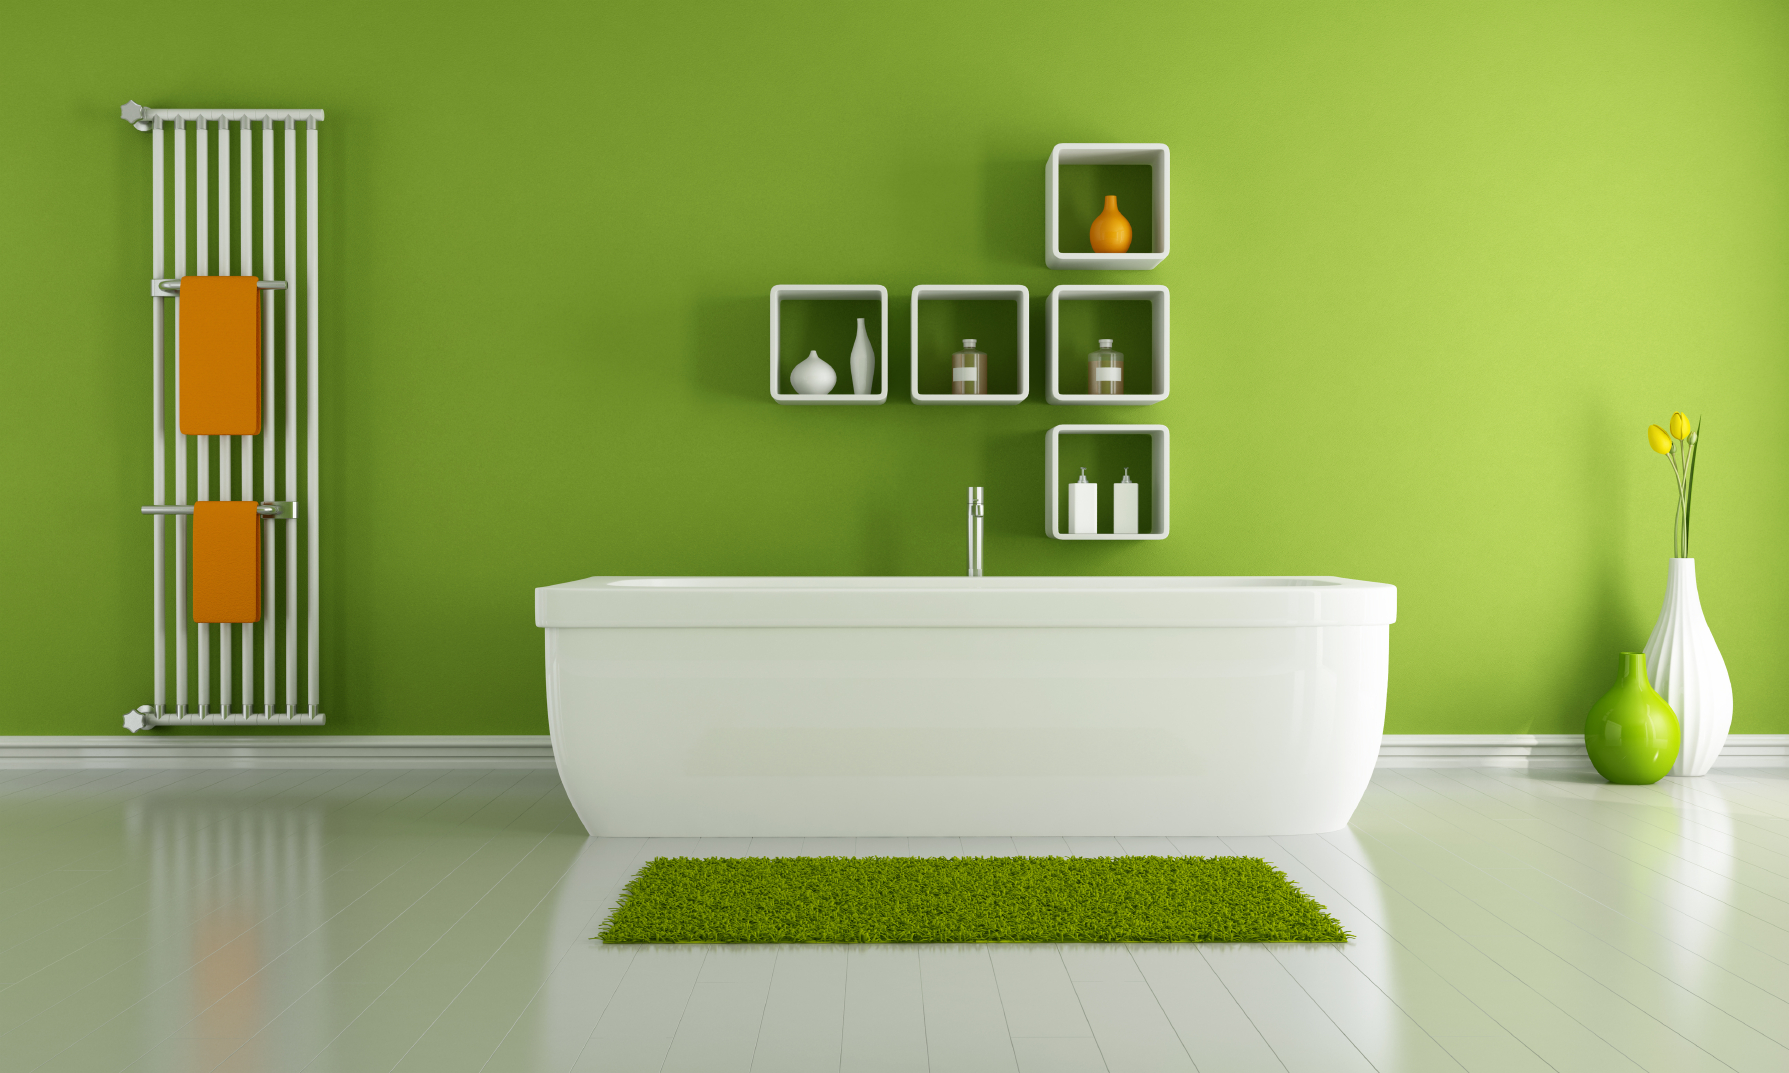 Discover How To Decorate The Bathroom Of Your Future Home - Green bathroom accessories sets for small bathroom ideas